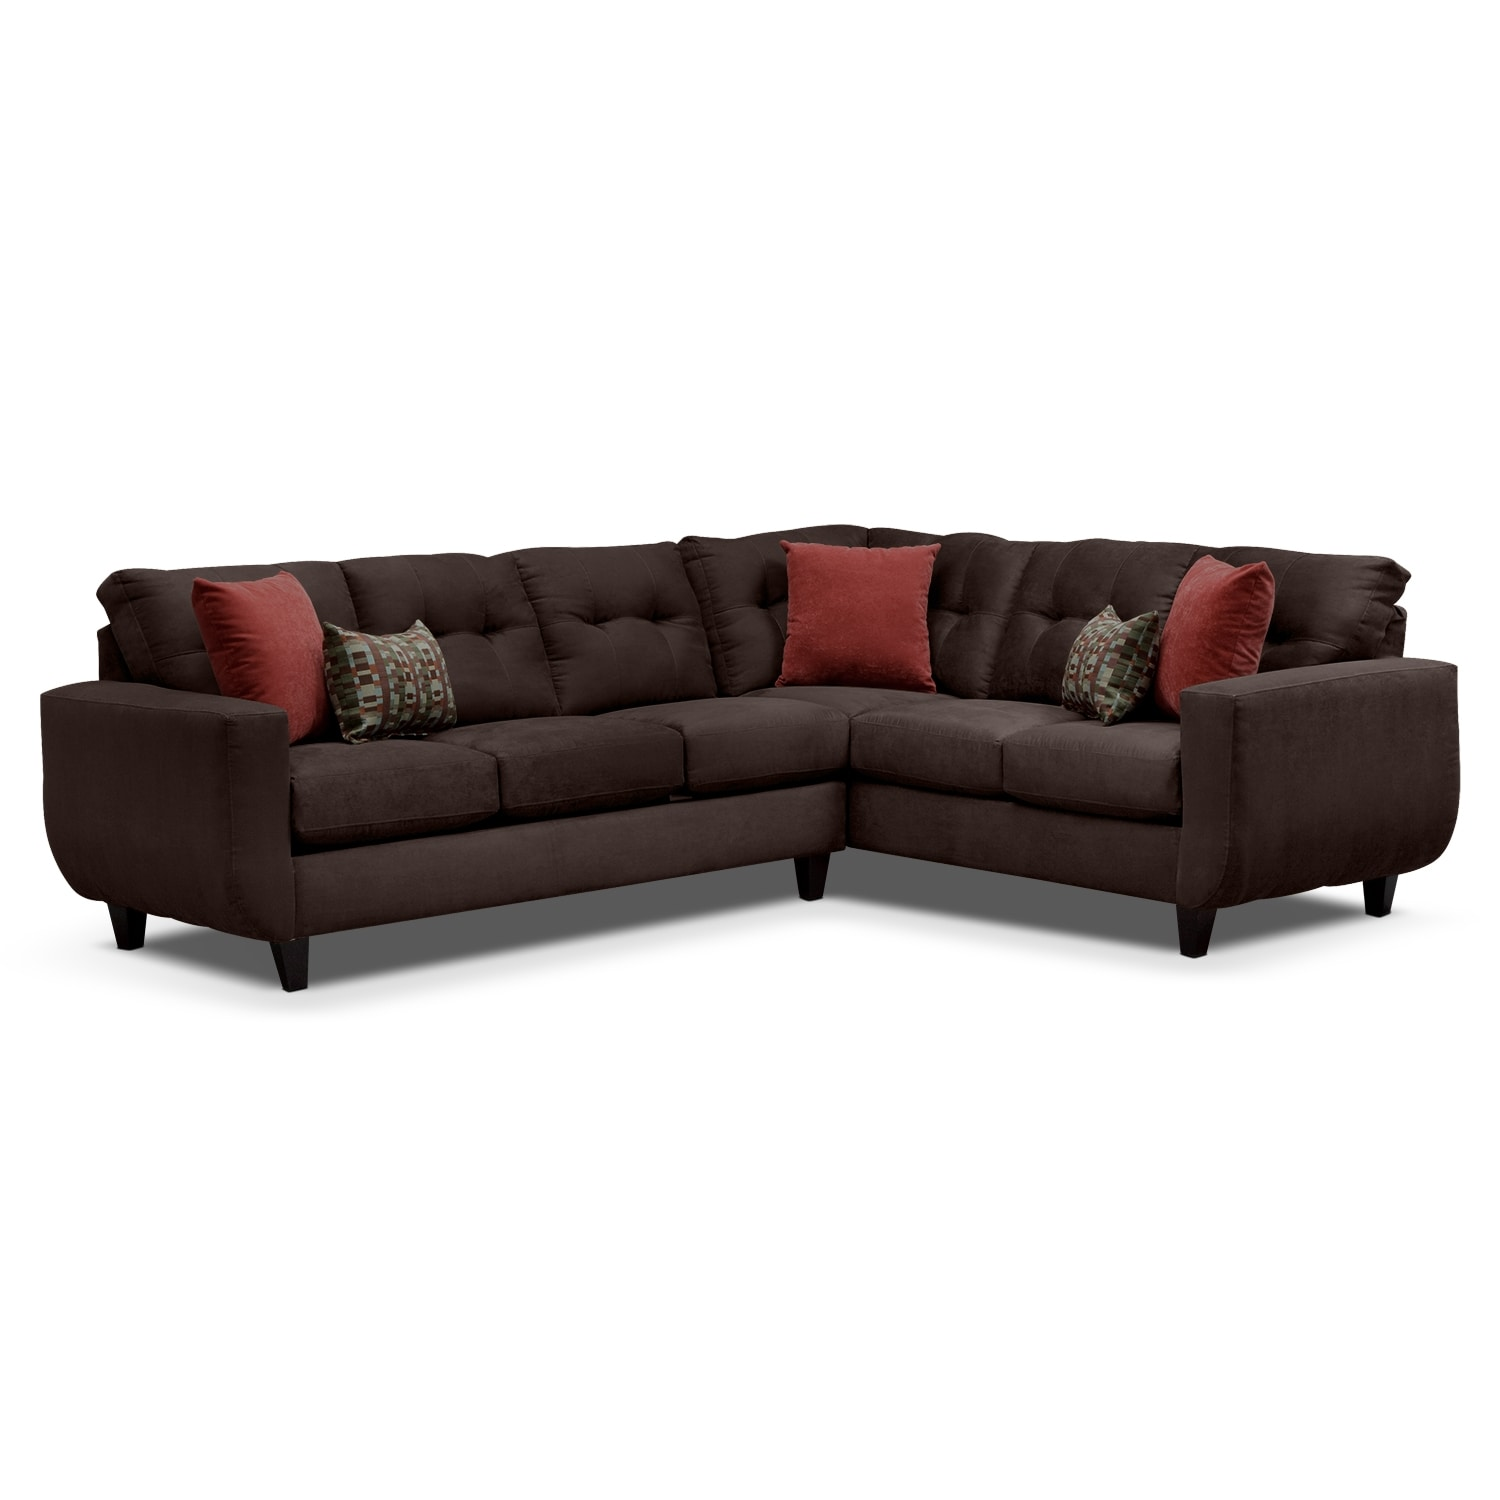 Living Room Furniture - West Village Chocolate II 2 Pc. Sectional